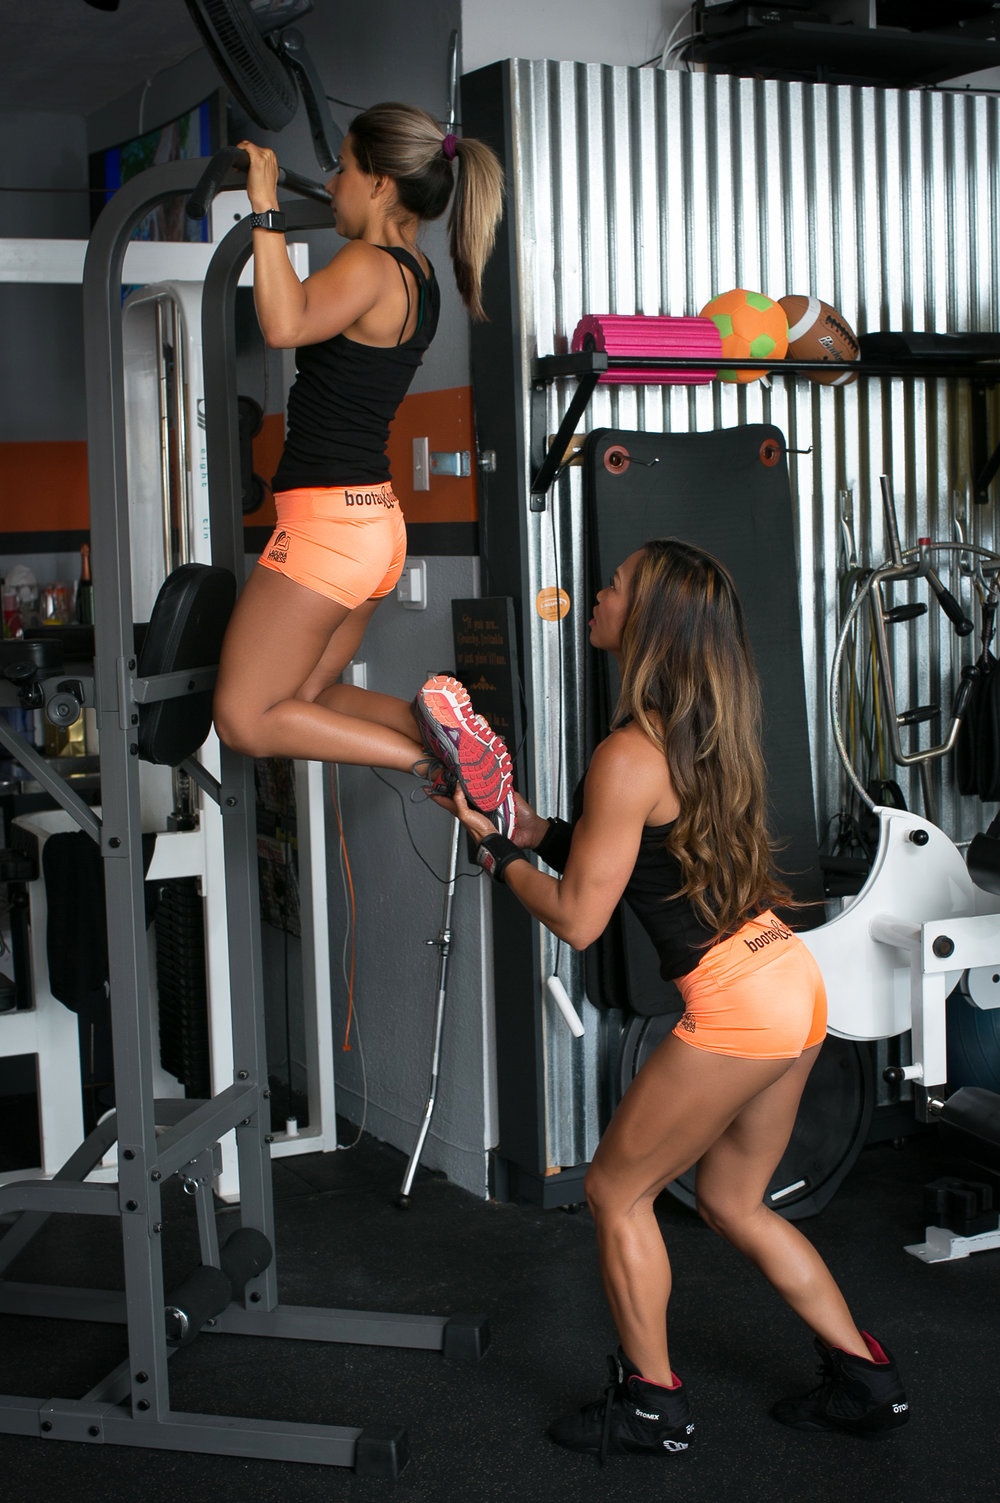 Cora Kasperski assisting her client, Andrea Keilholz, at her new Laguna Beach gym. Photo courtesy of Tony Florez